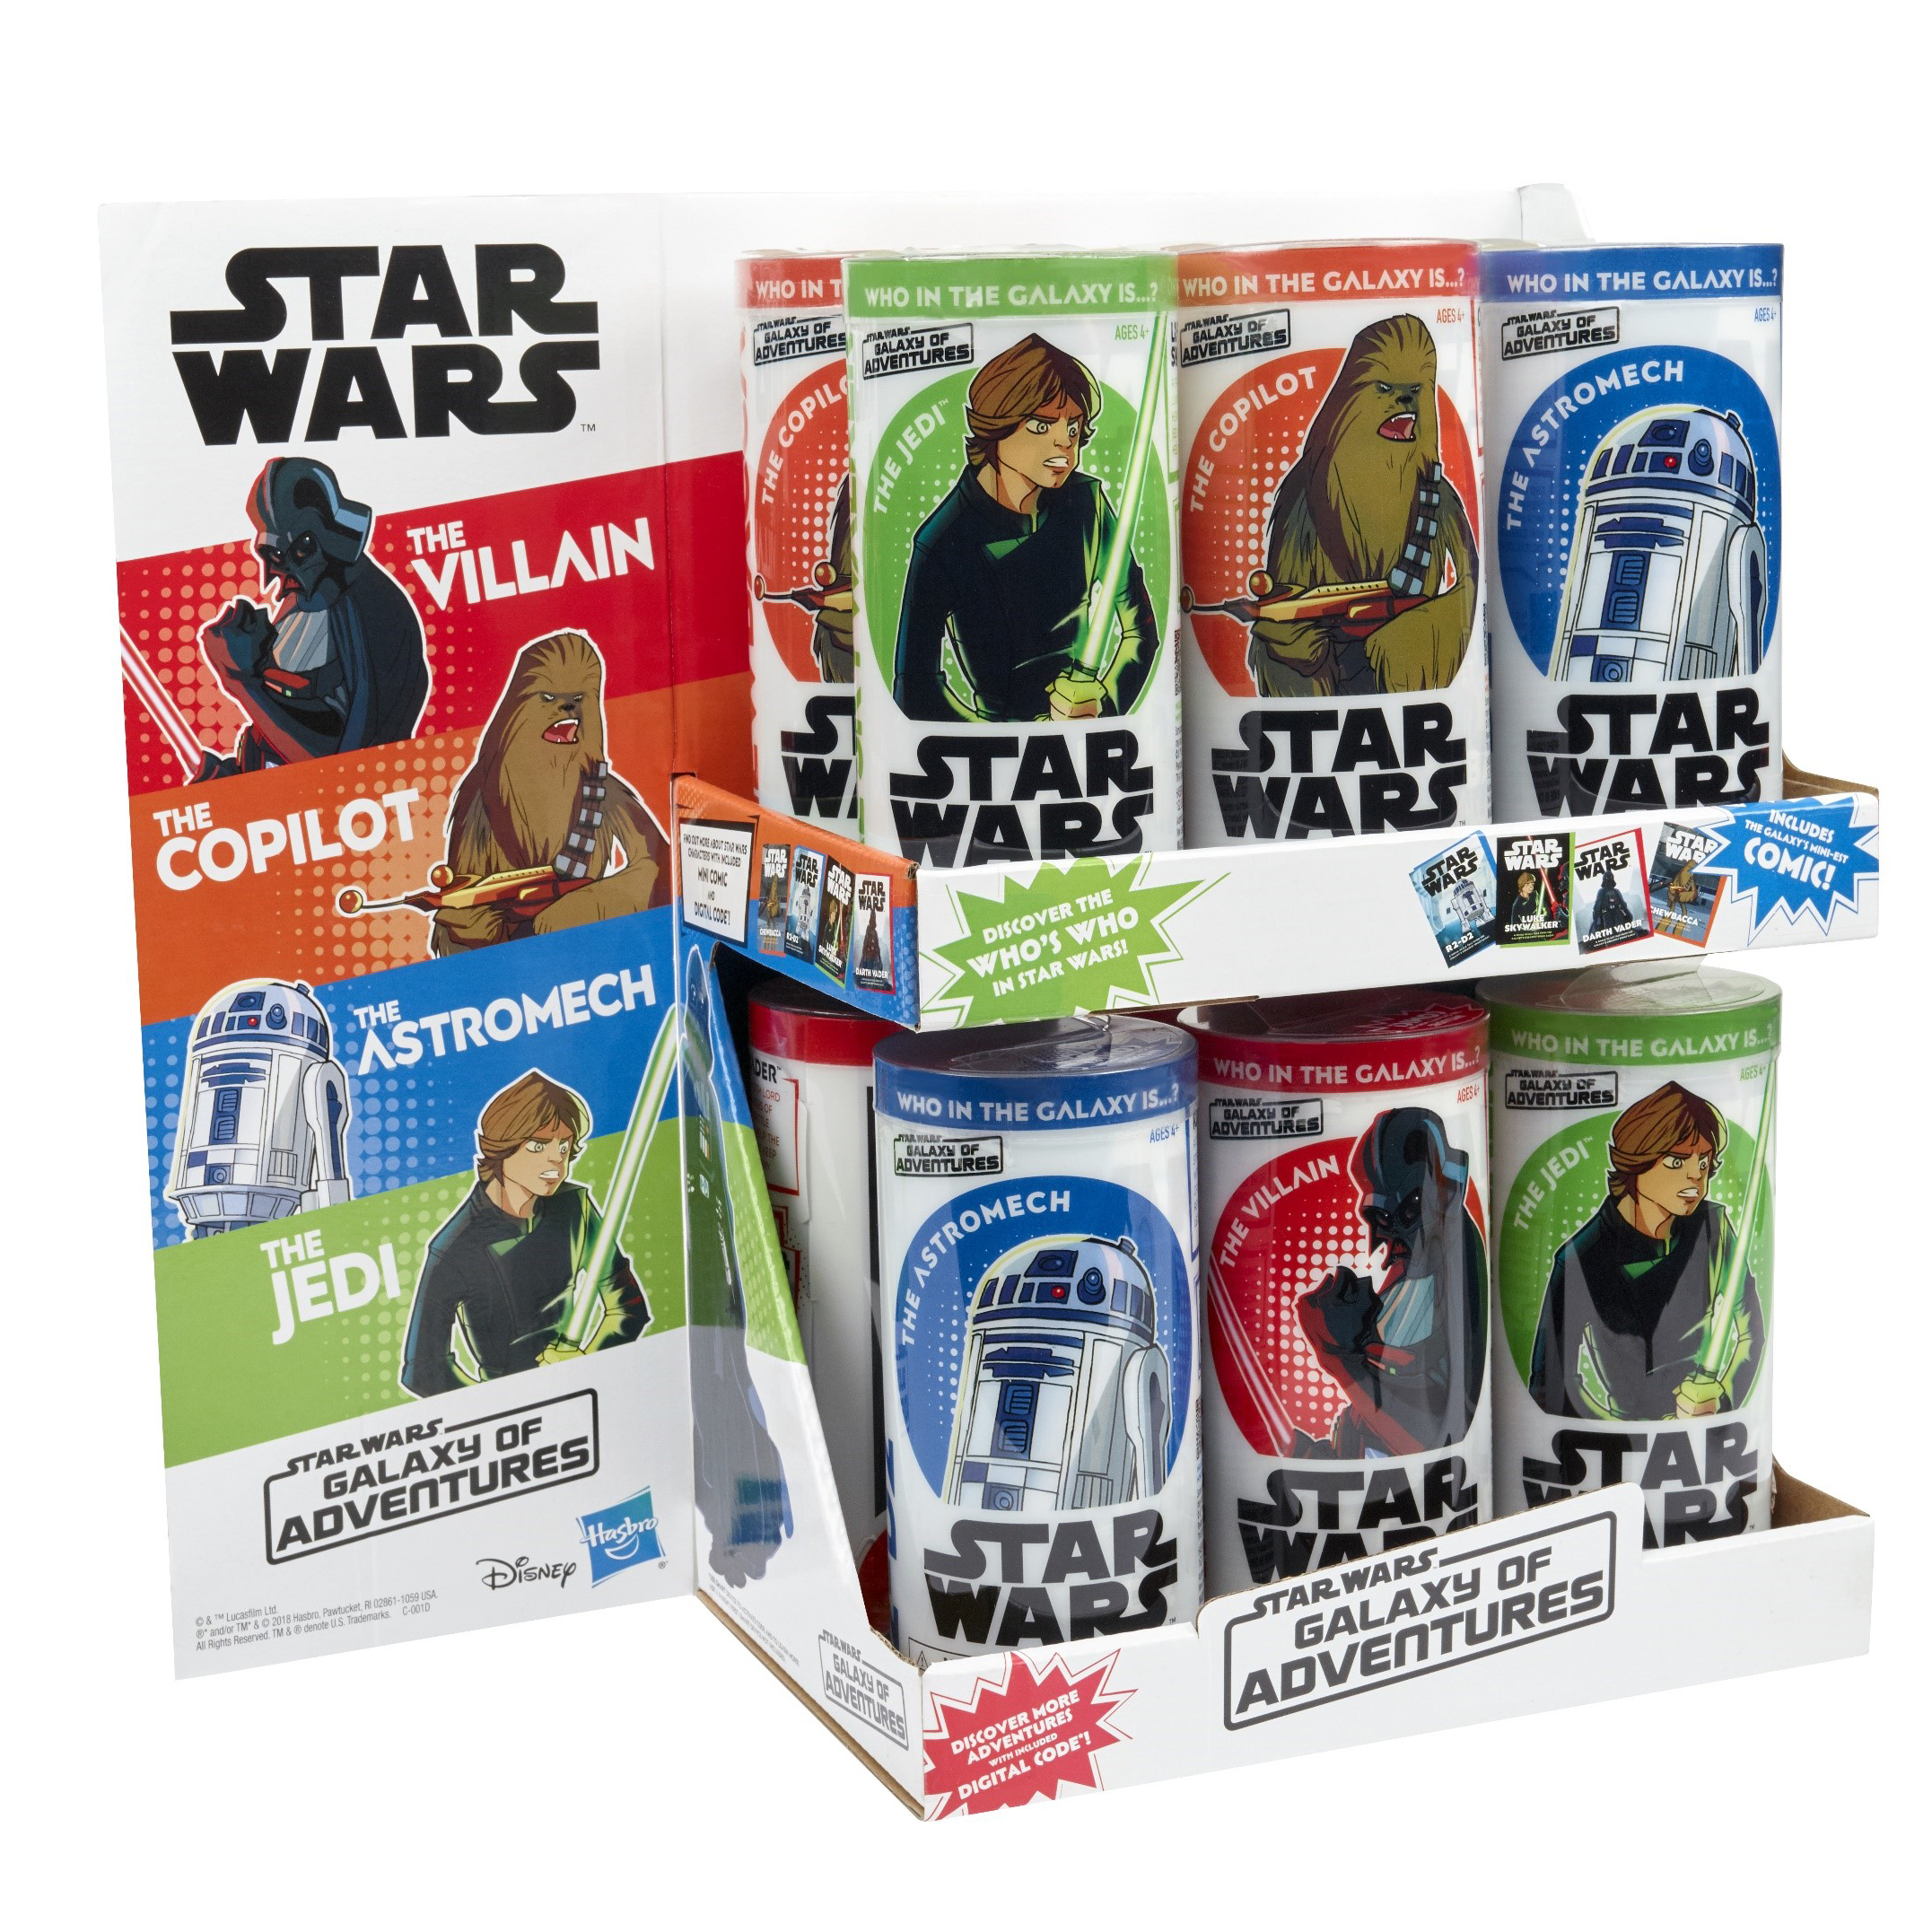 STAR WARS GALAXY OF ADVENTURES Assortment - PDQ (1)